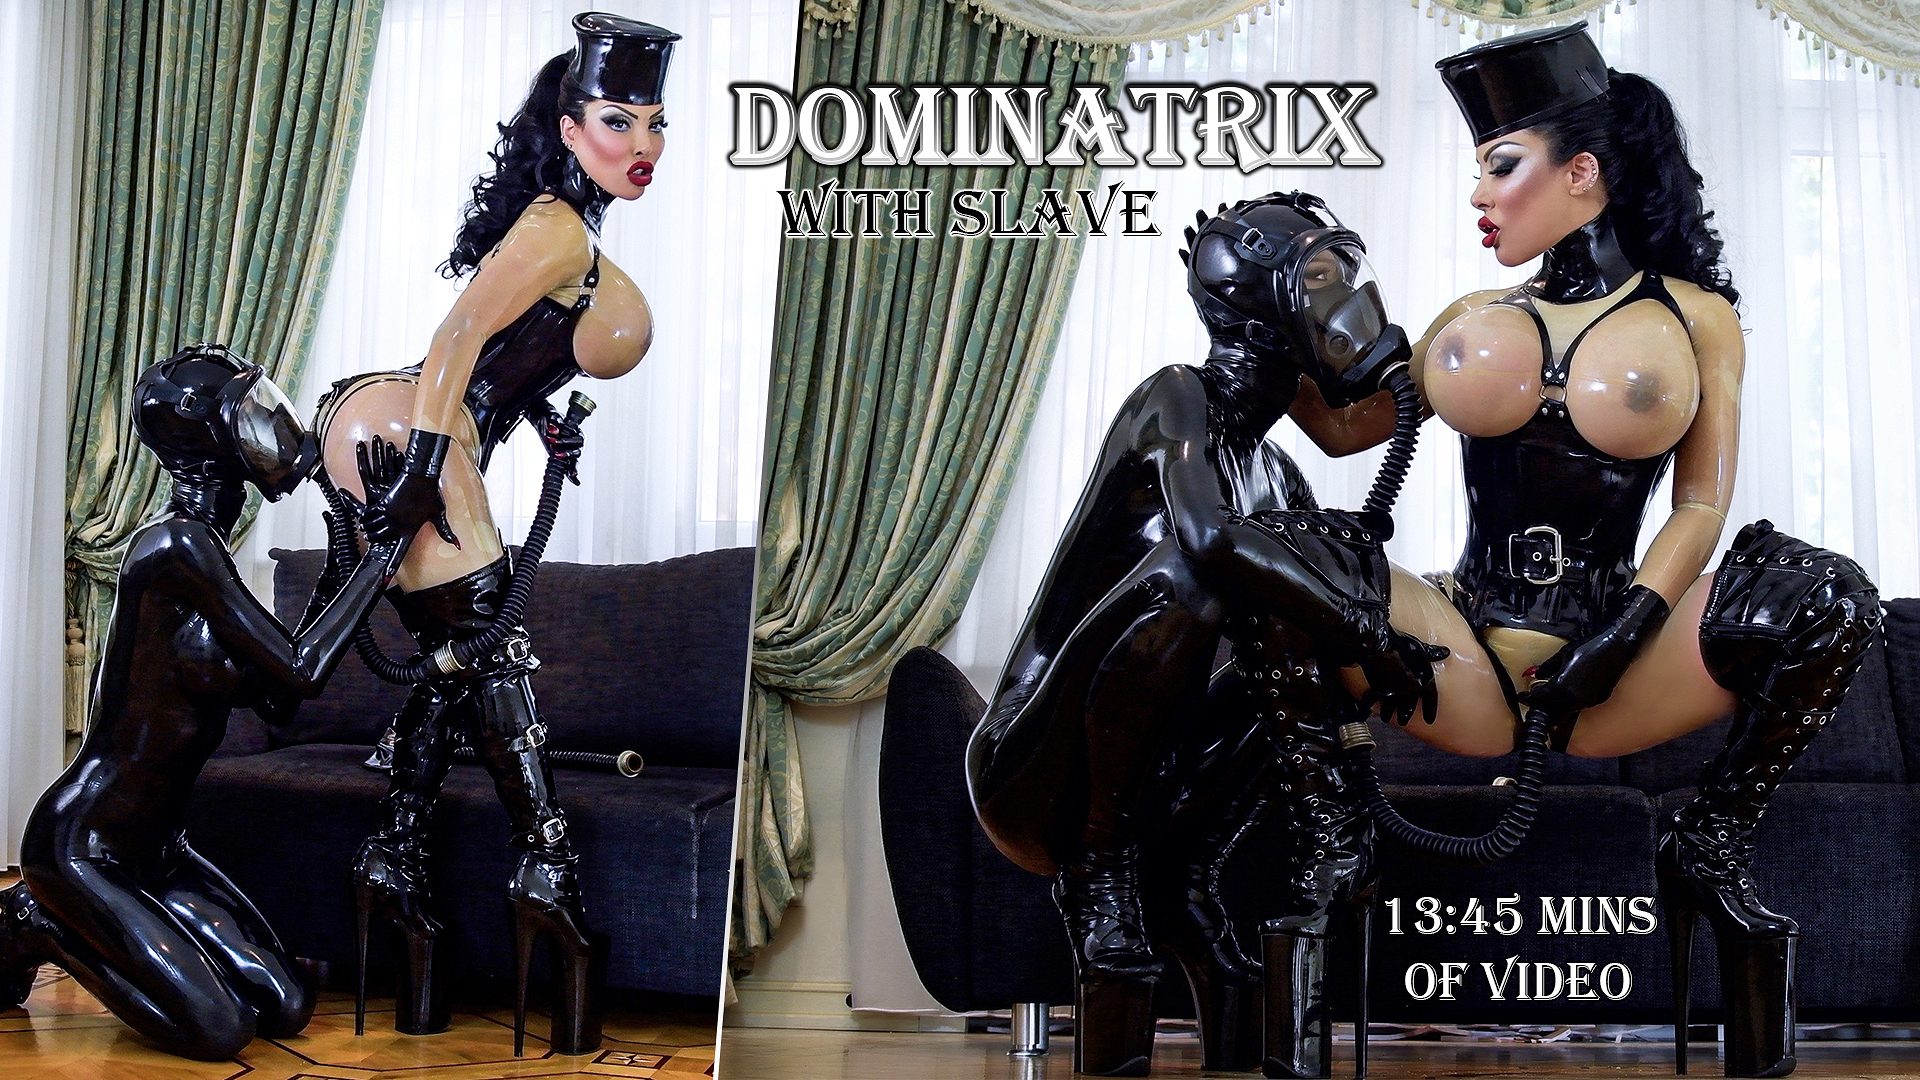 Dominatrix with Slave Kylie Marilyn